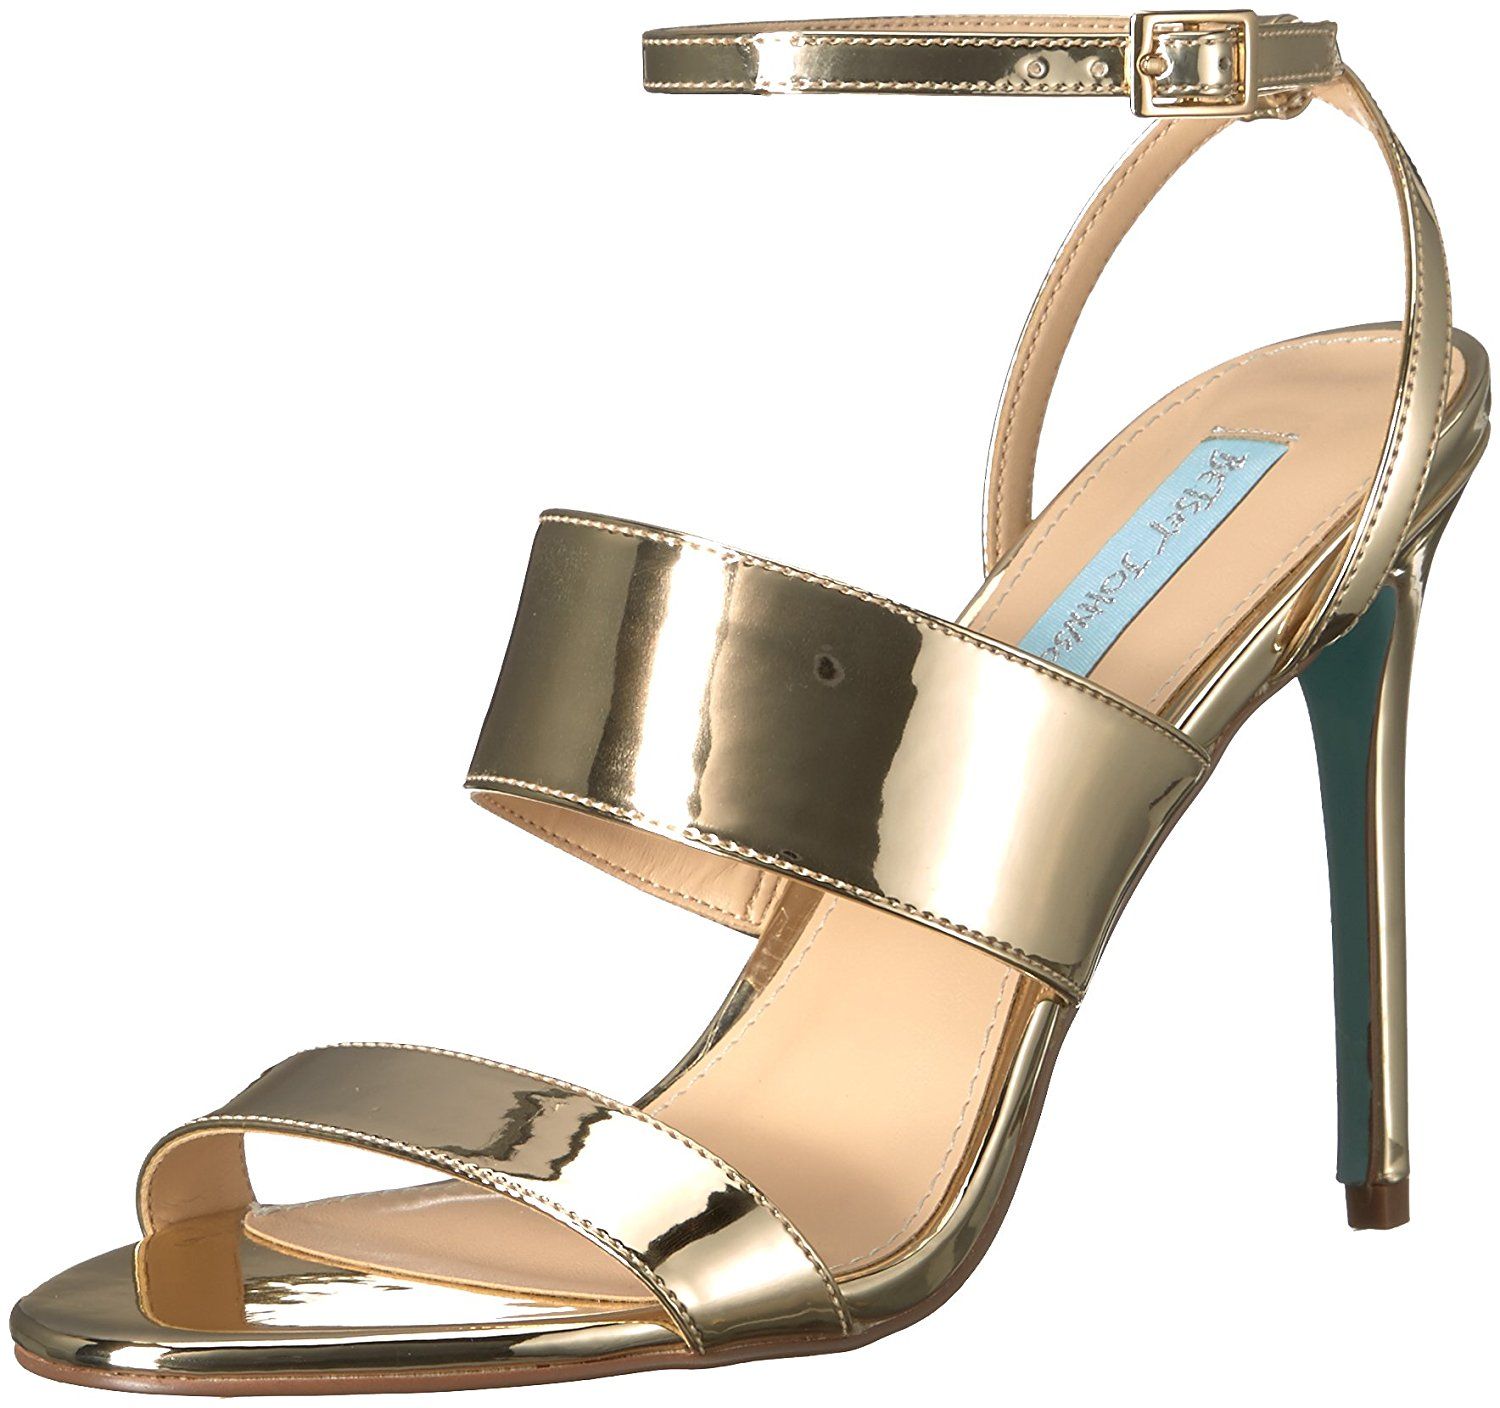 Betsey Johnson Womens Jenna Open Toe Special Occasion Ankle Gold Foil Size 6.0